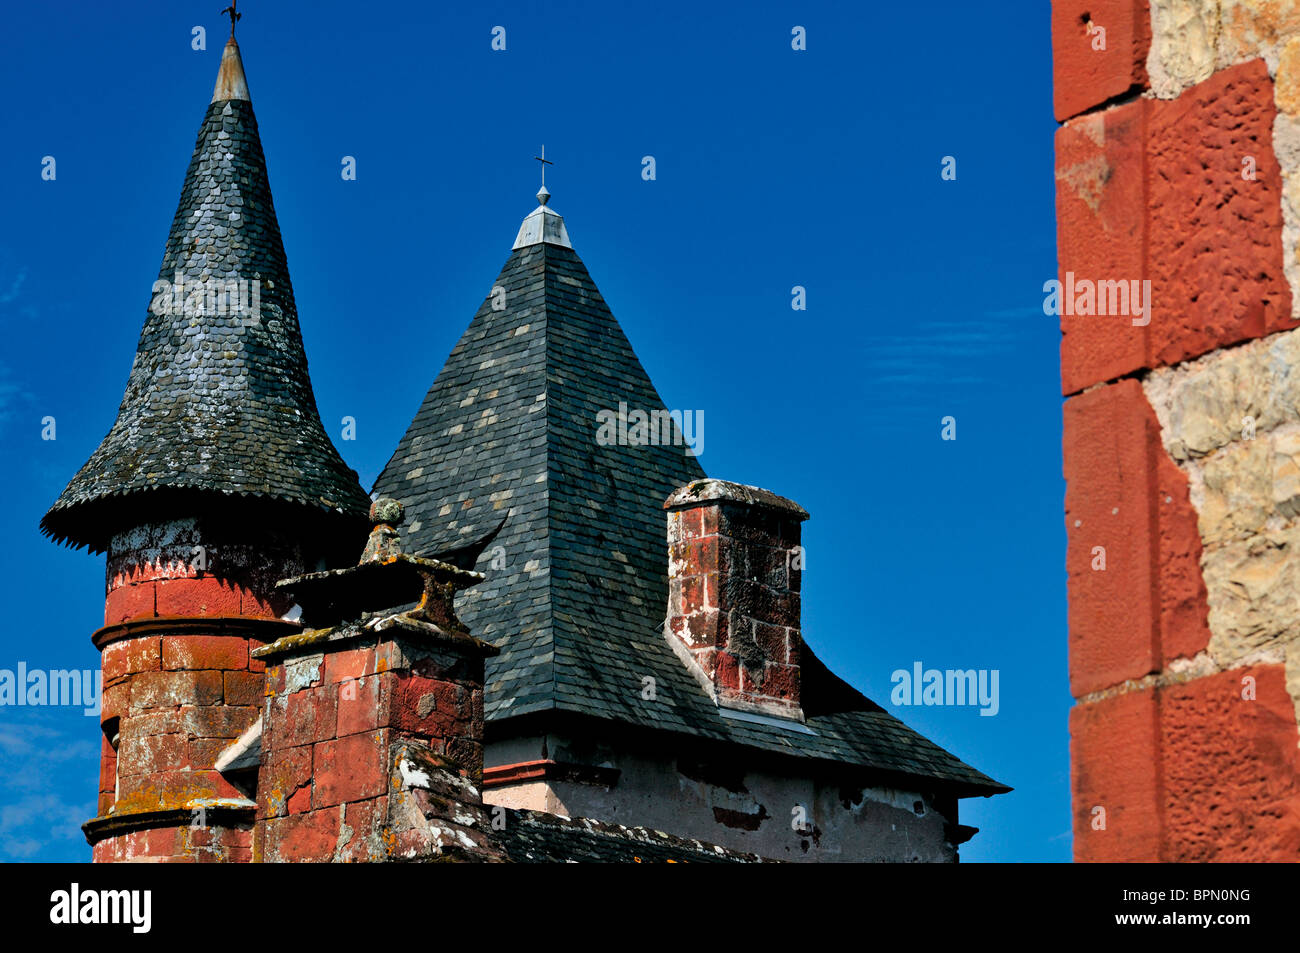 France: Top of a Tower house in Collonges-la-Rouge - Stock Image